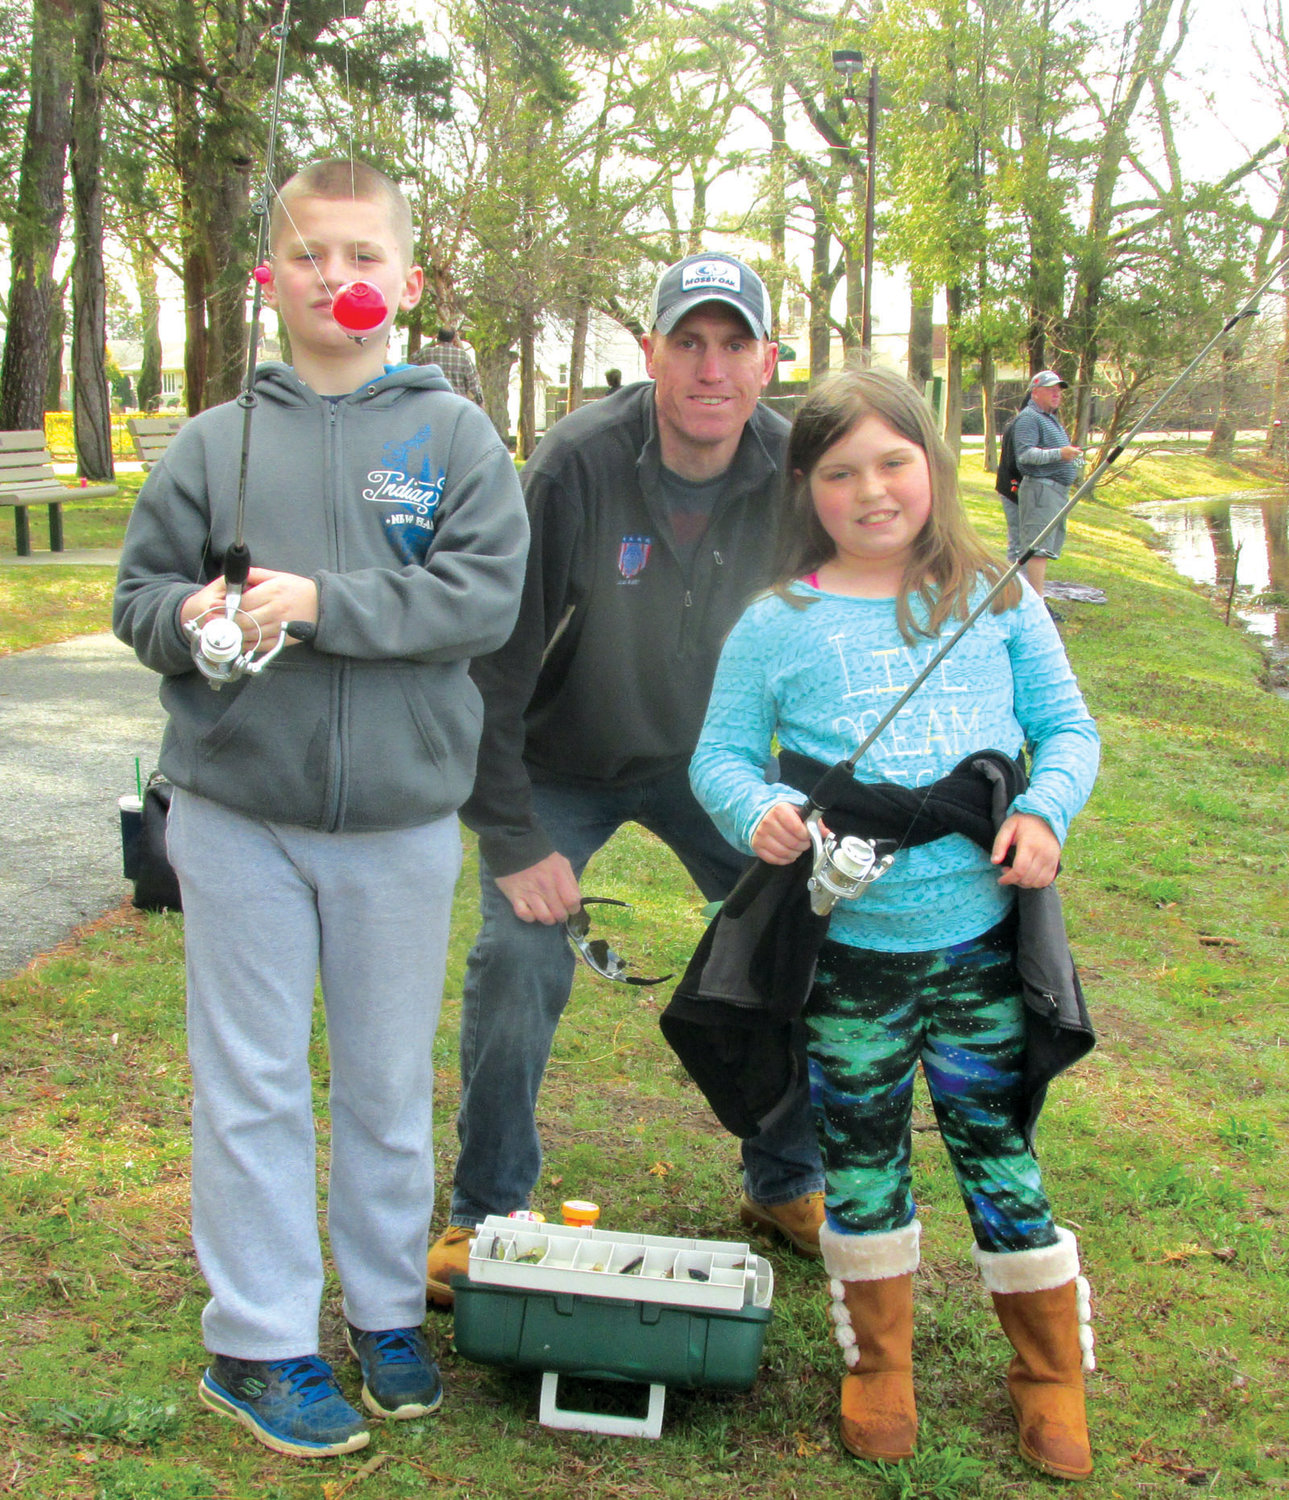 TROUT TREK: This scene will be commonplace Saturday when the Johnston Parks & Recreation Department holds its annual Youth Fish Derby inside War Memorial Park. Youngsters ages 4-12 are eligible to fish.